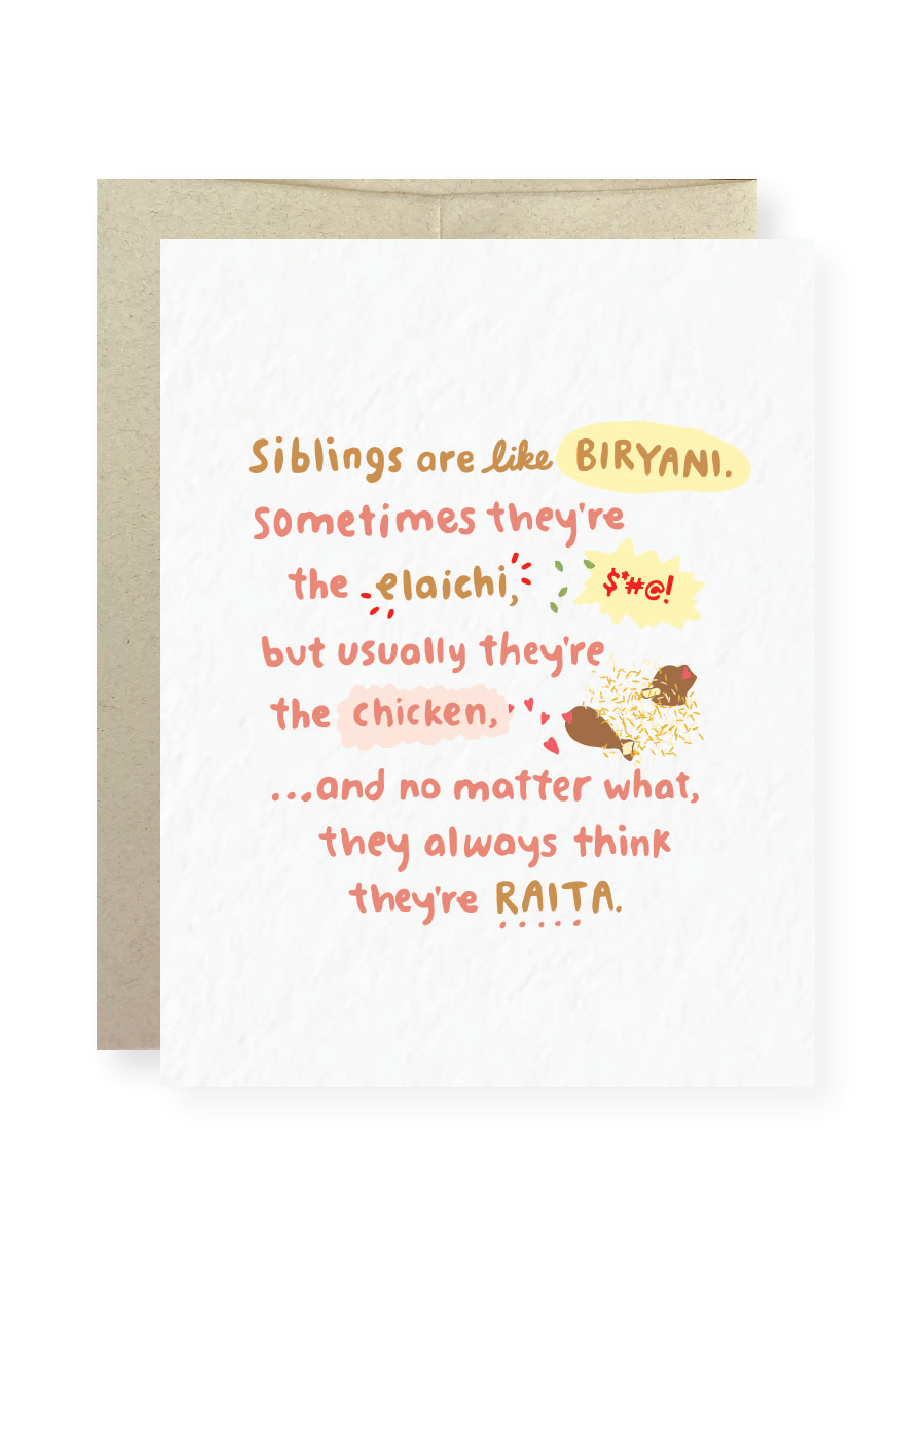 Siblings are like Biryani